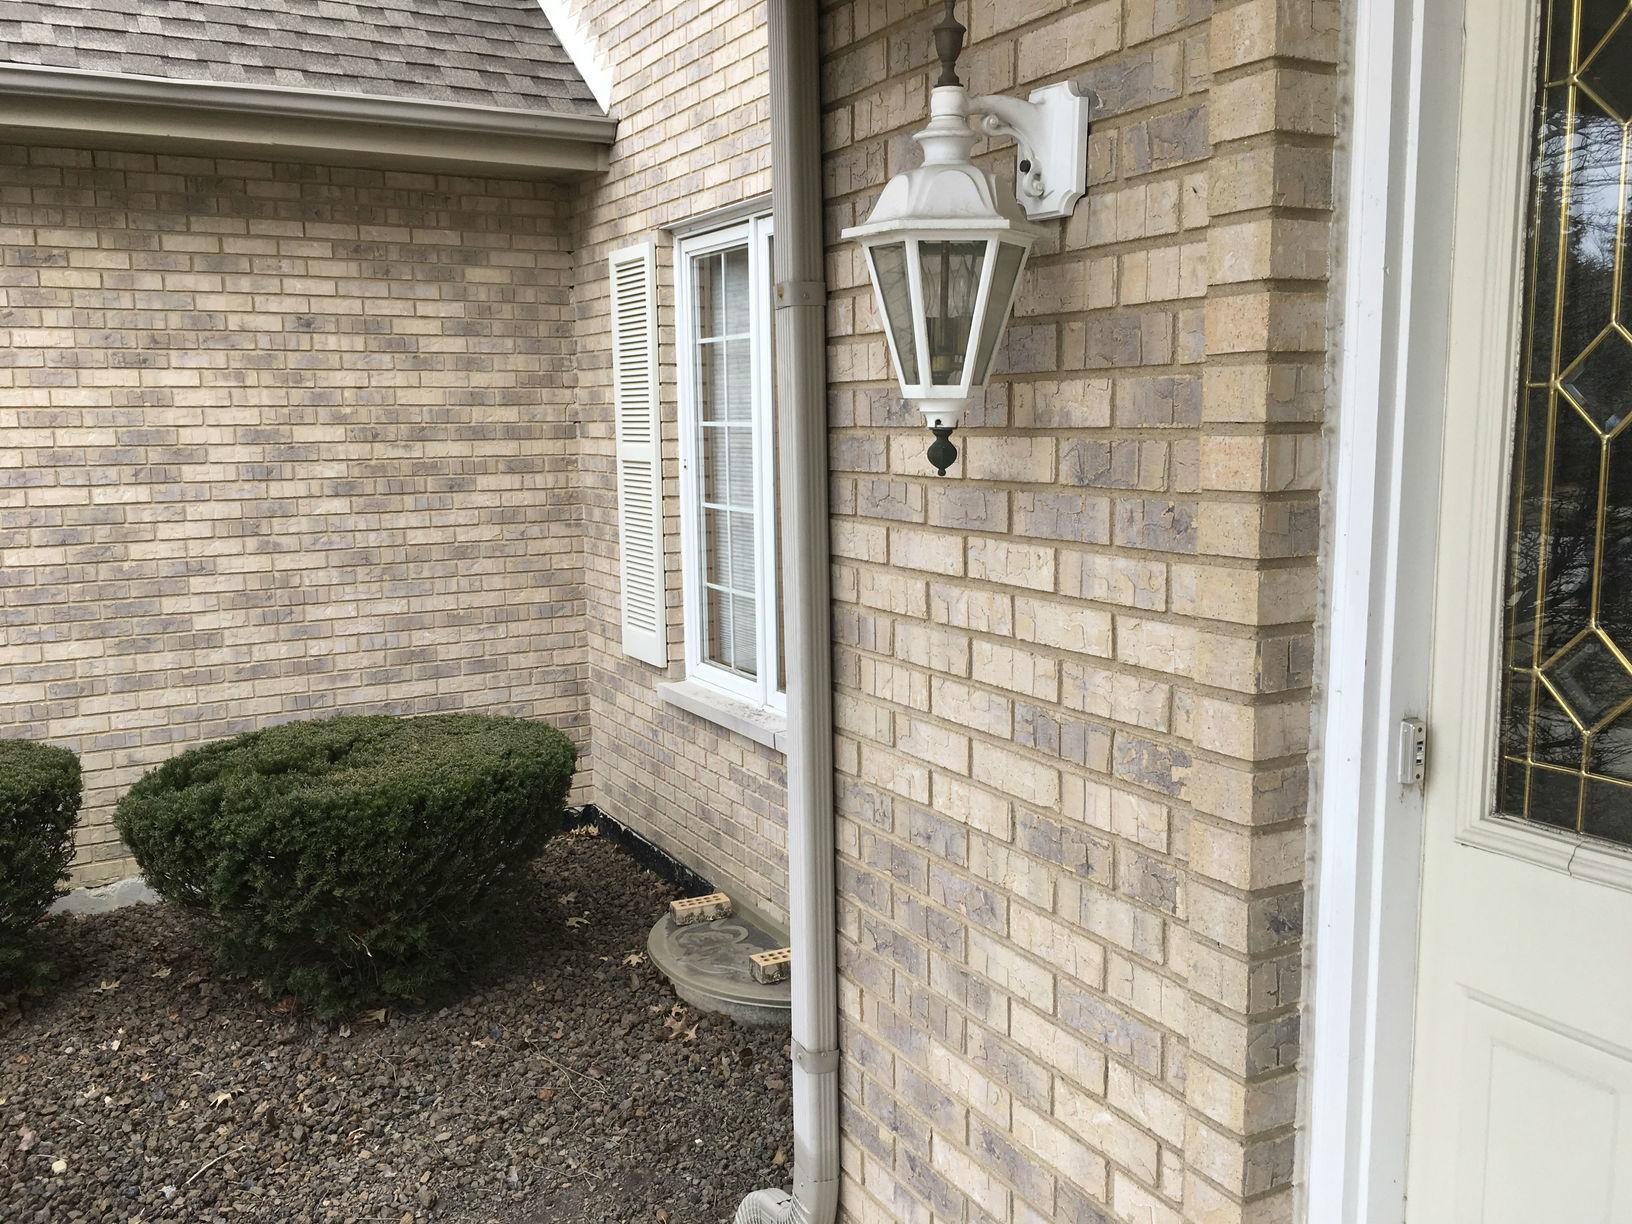 Downspout attachment in Orland Park, IL - After Photo